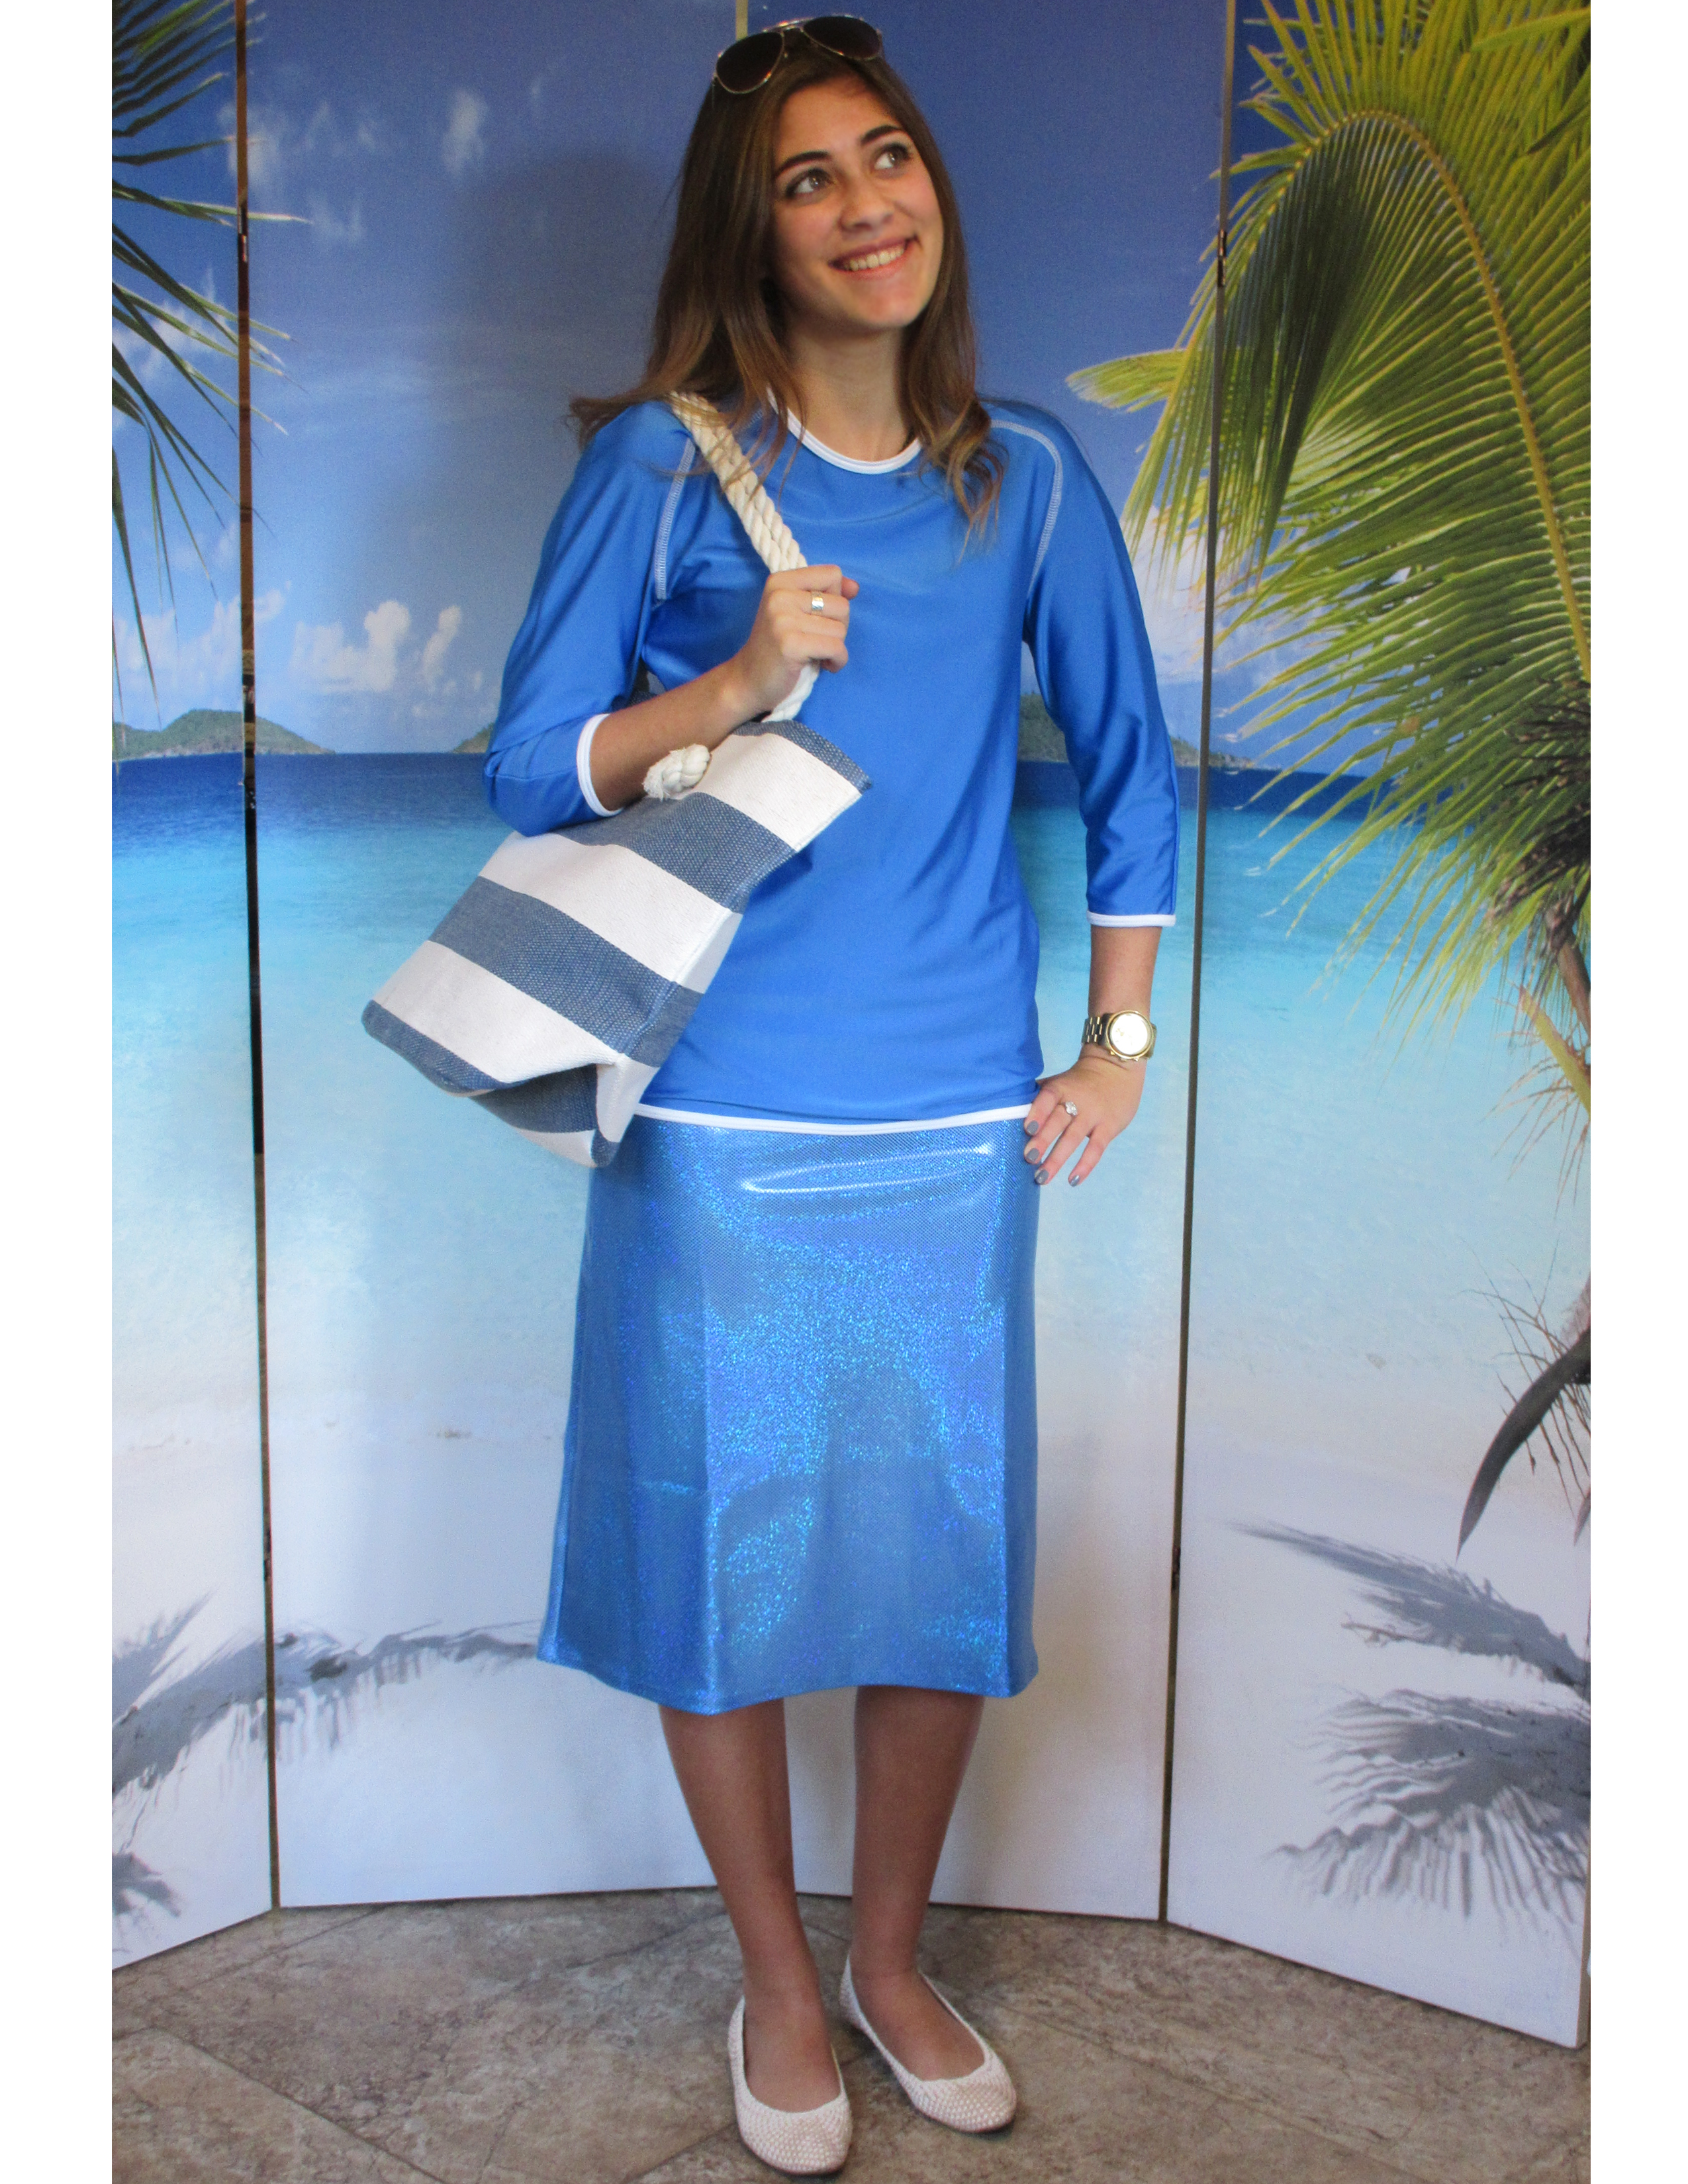 model-wearing-style-2629-in-sailing-blue-with-sparkle-blue-skirt-and-beach-bag.jpg